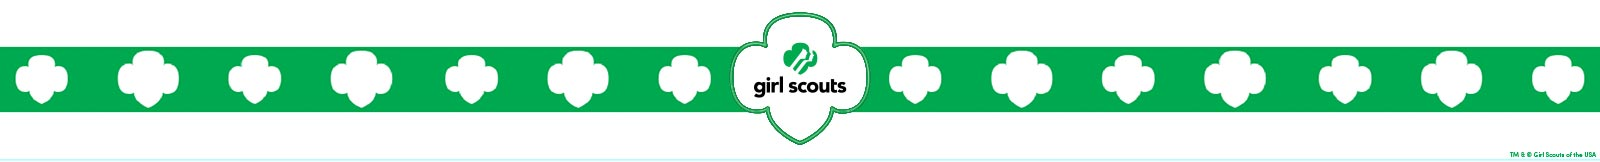 Girl Scouts Banner